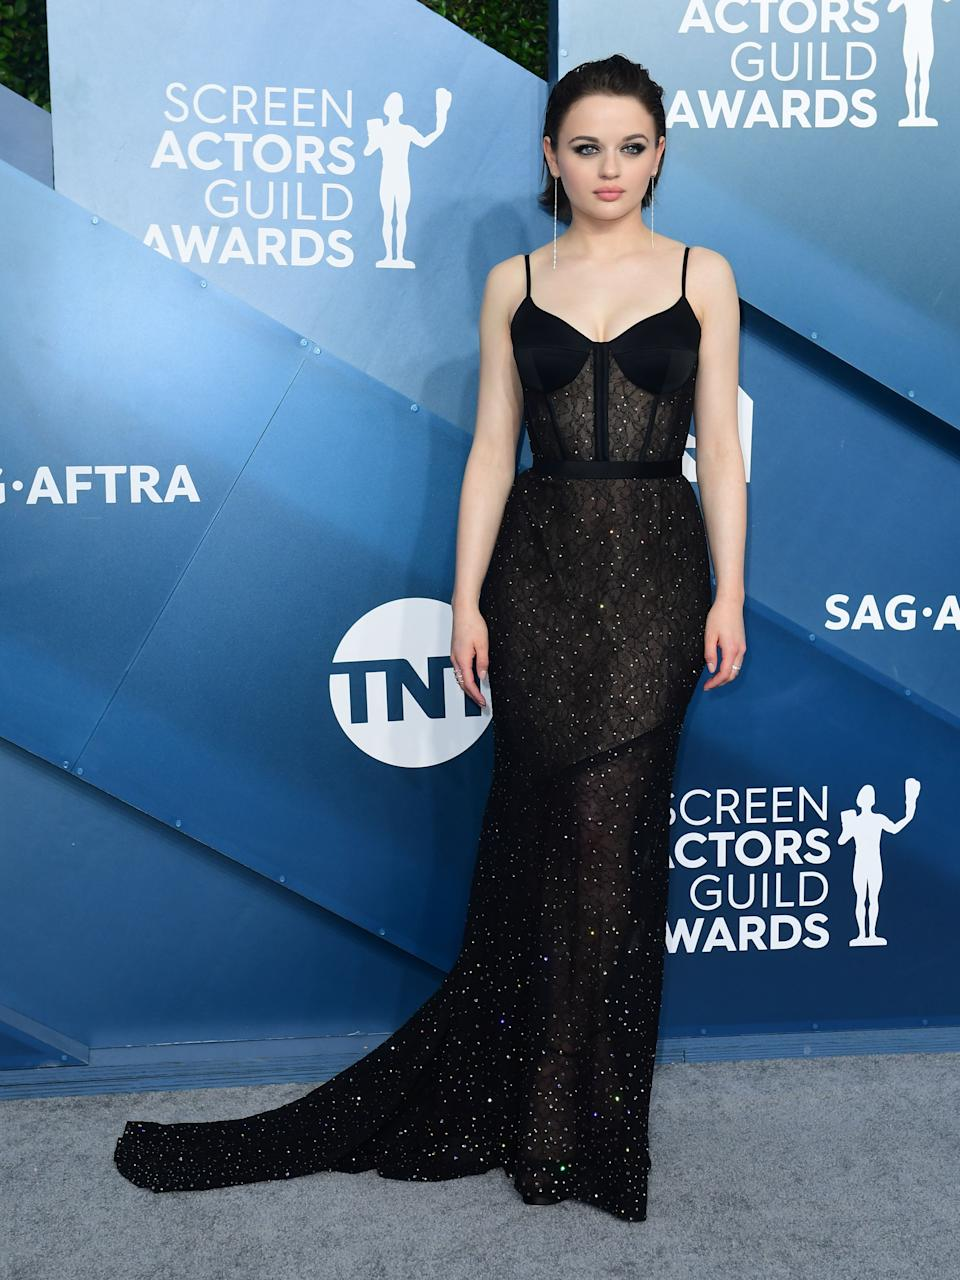 """<h2>Joey King in Jason Wu</h2><br>Joey King walked the red carpet alongside her mom and grandma, looking elegant and sophisticated in this sheer, black corset gown.<span class=""""copyright"""">Photo by FREDERIC J. BROWN/AFP via Getty Images.</span>"""